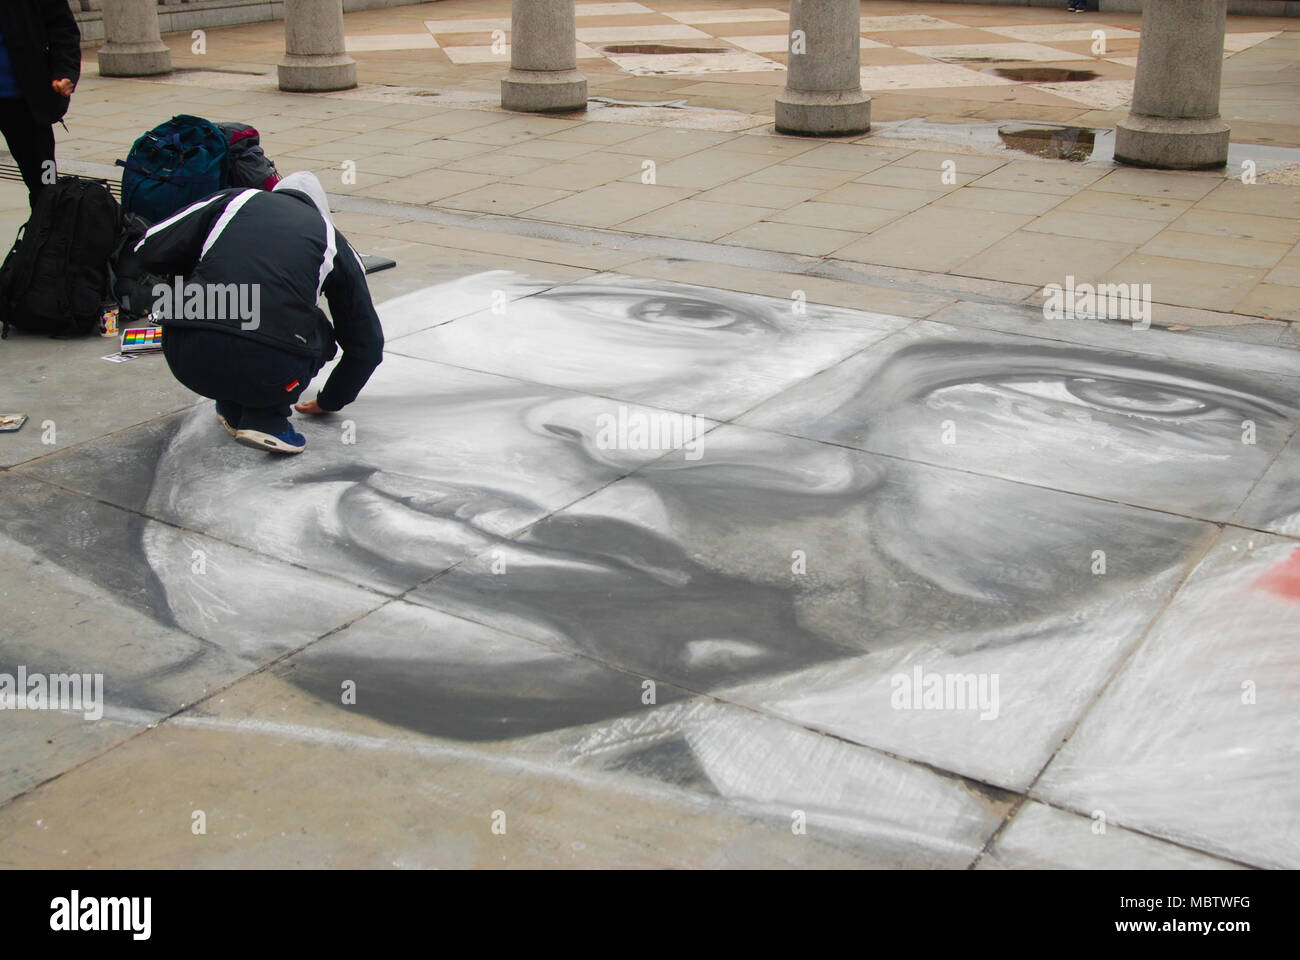 LONDON, UK - Marc 2018.a man who draws a portrait on the asphalt. day of wekeend. Editoria Image. - Stock Image